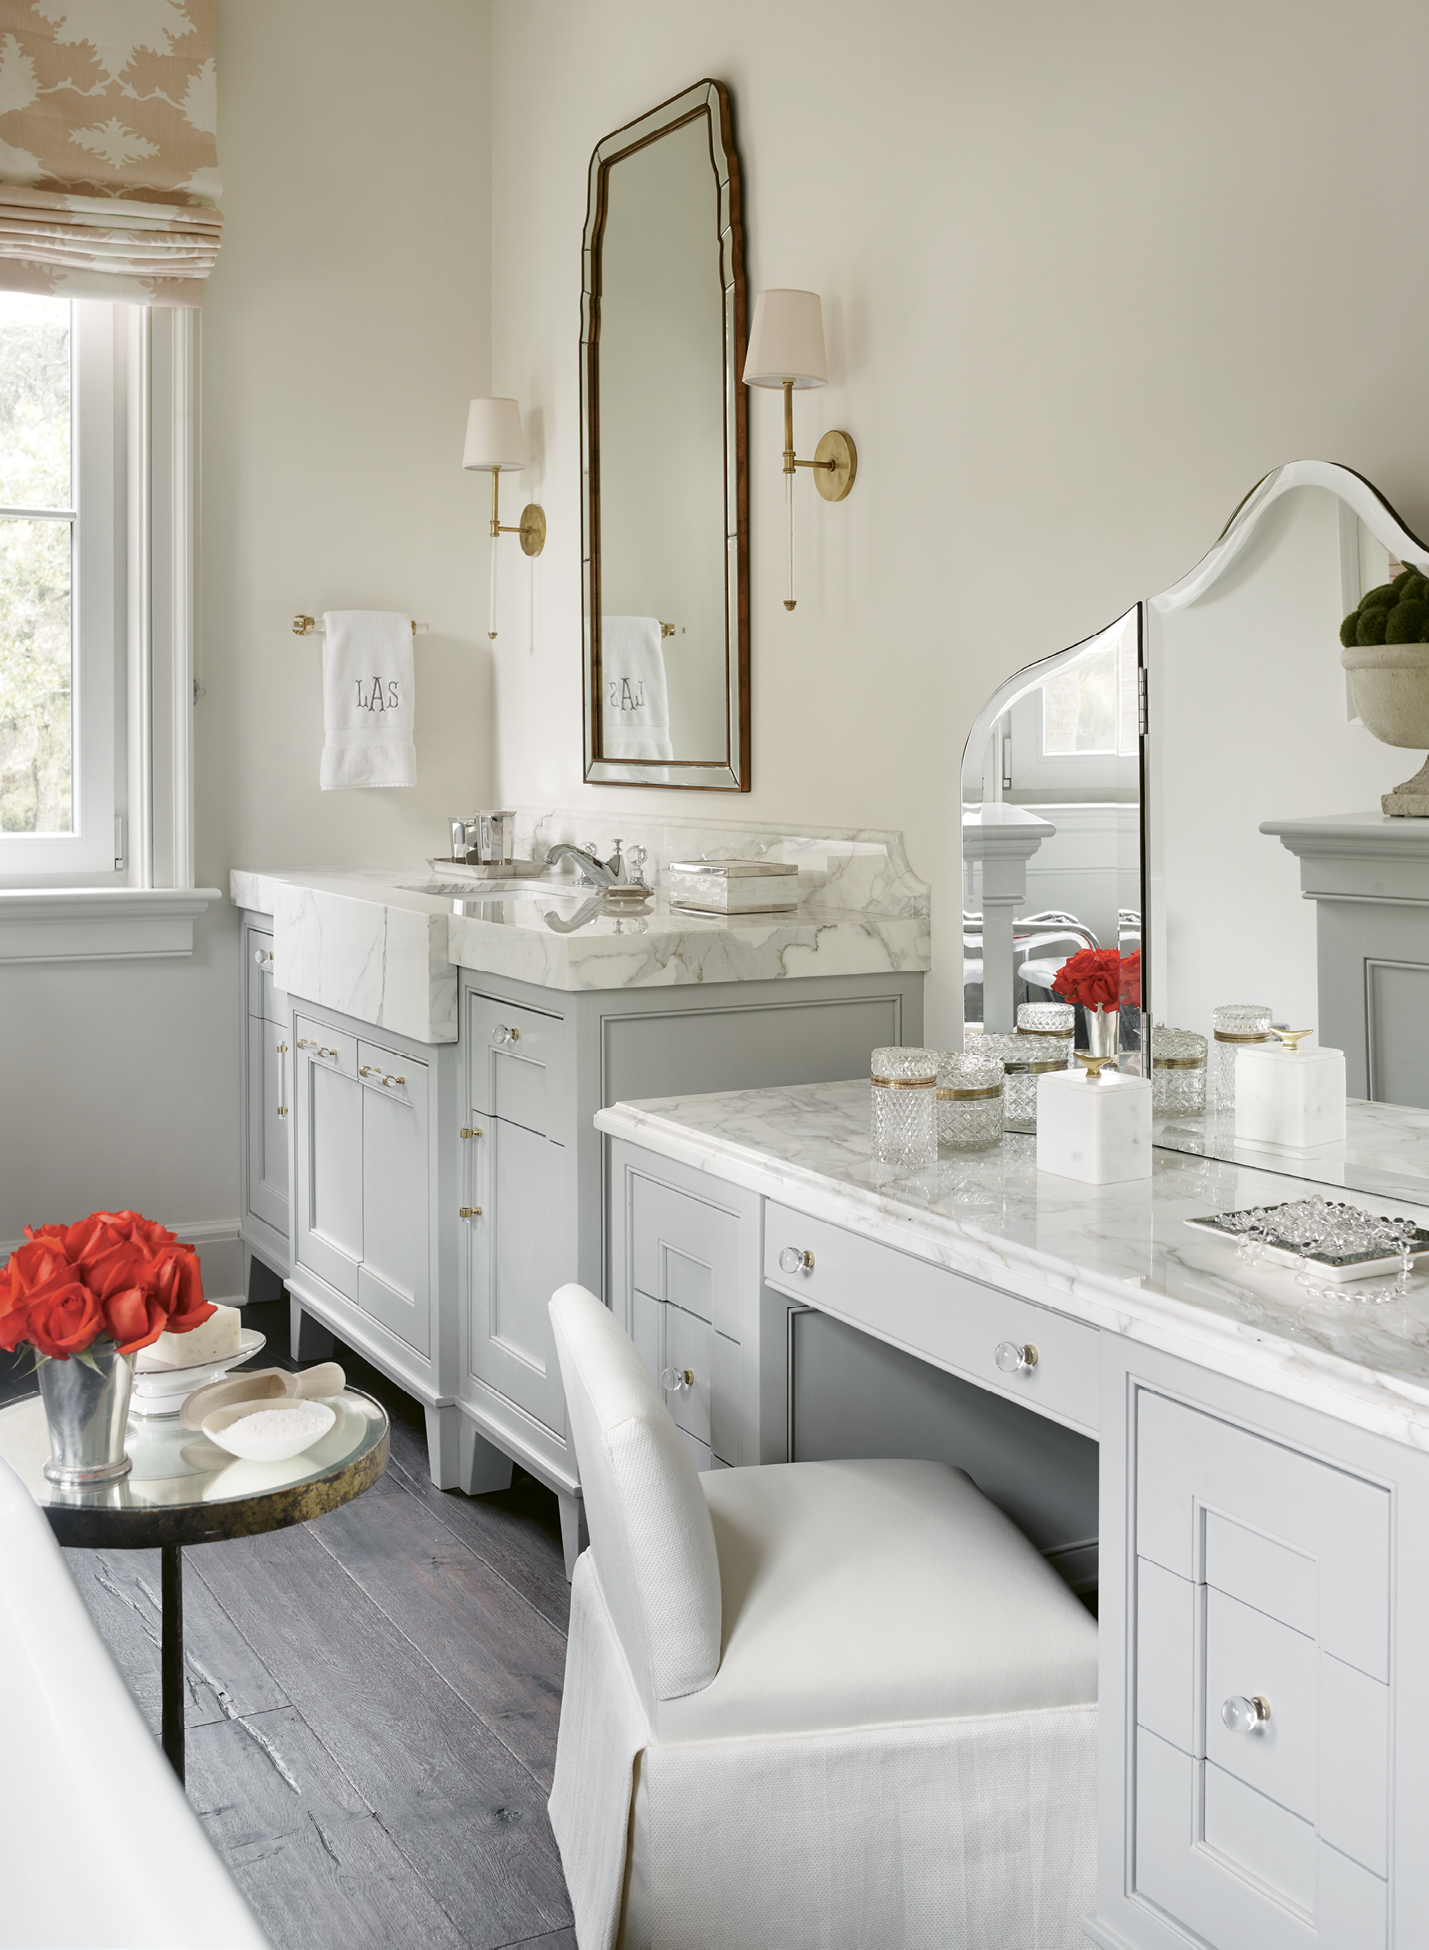 The suite is outfitted with his-and-her baths; Leah's includes a dressing table complete with a custom vanity stool.